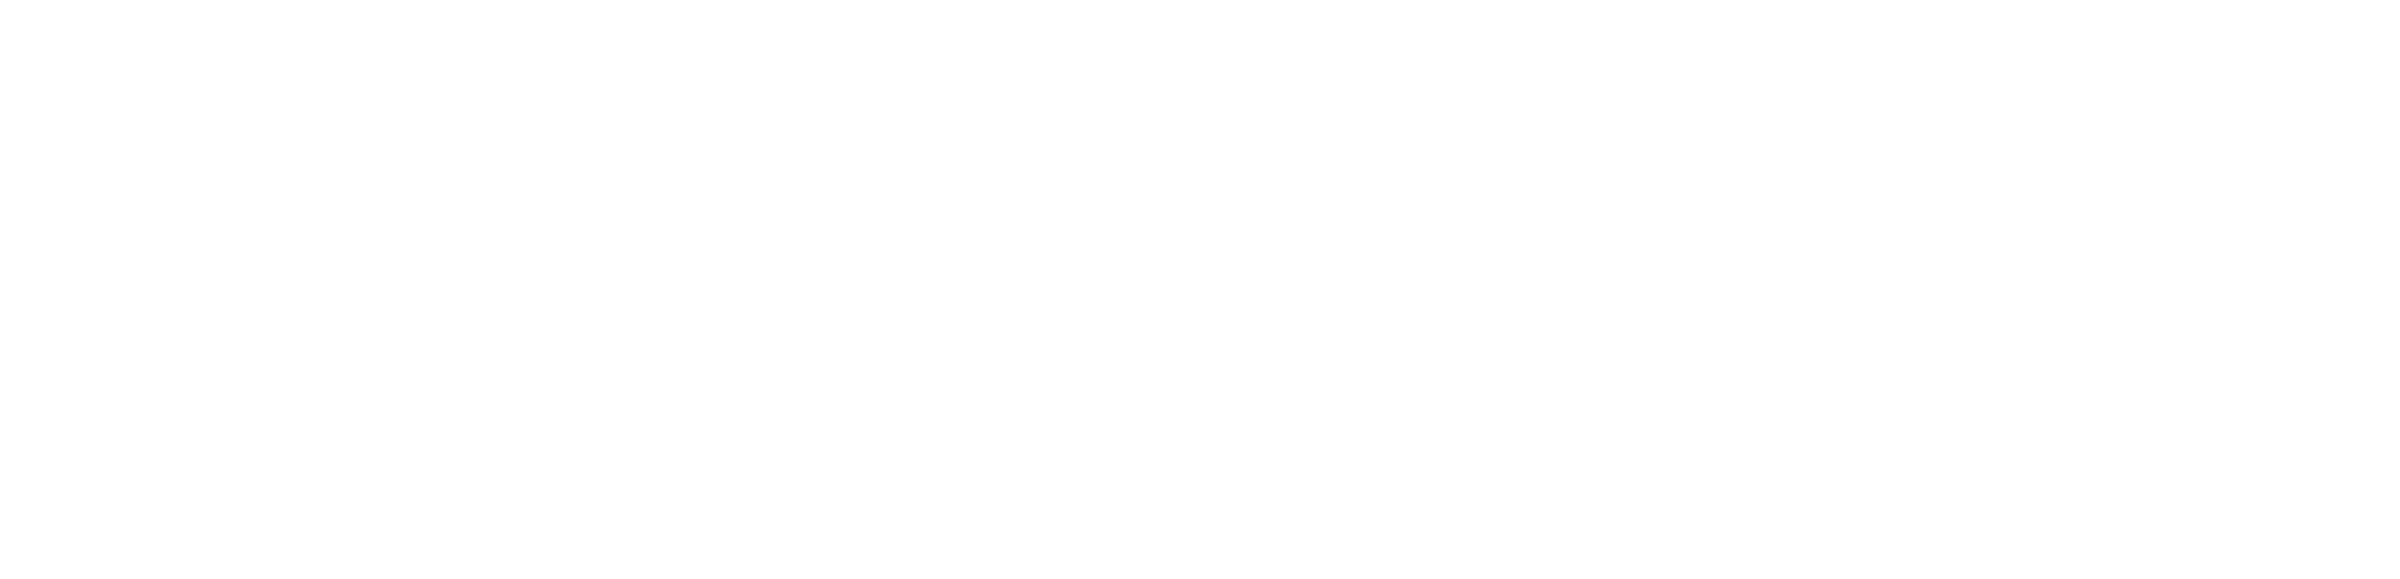 google-play-logo-black-and-white.png